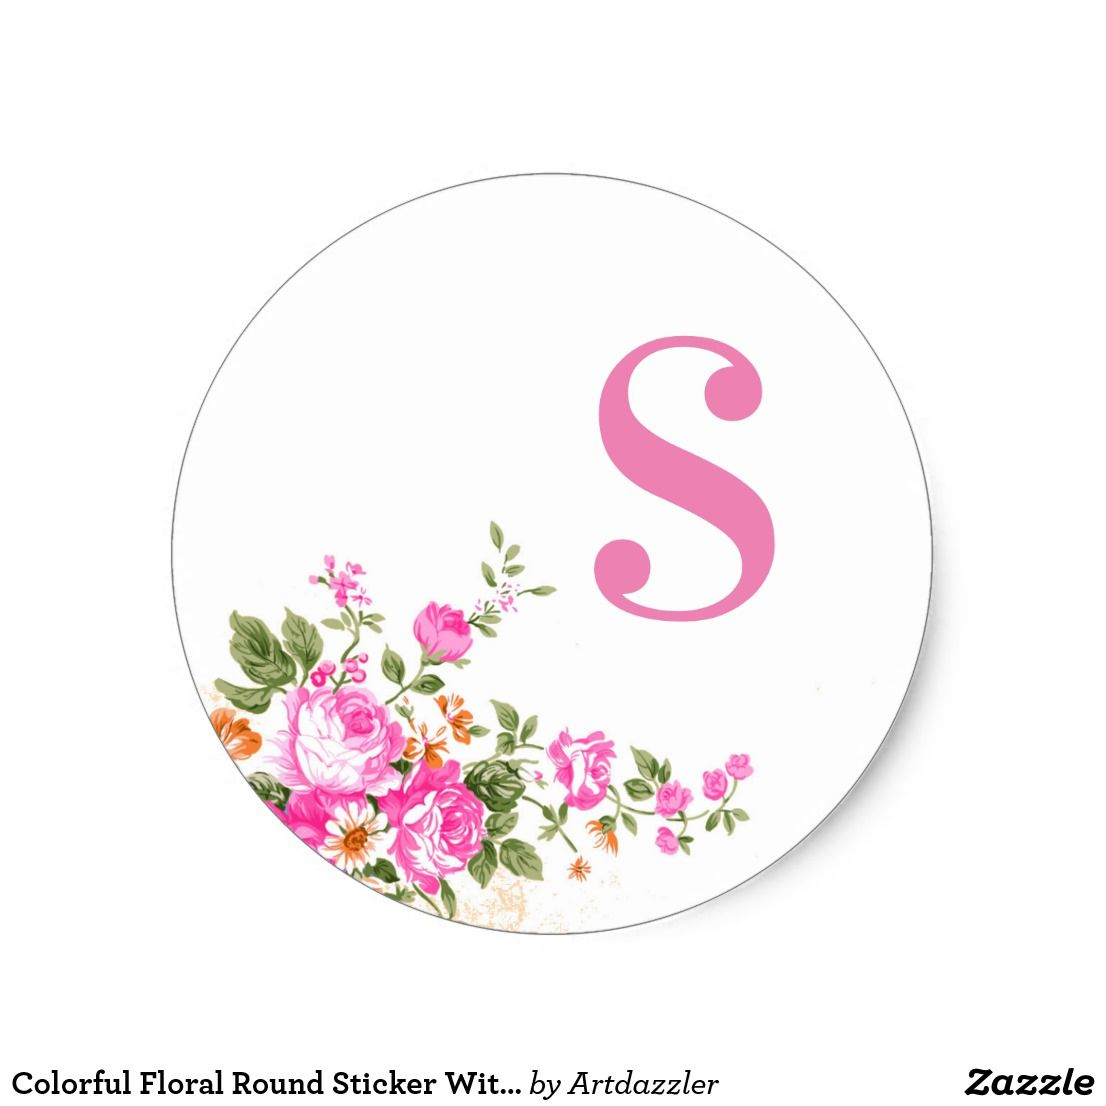 Colorful floral round sticker with s alphabet